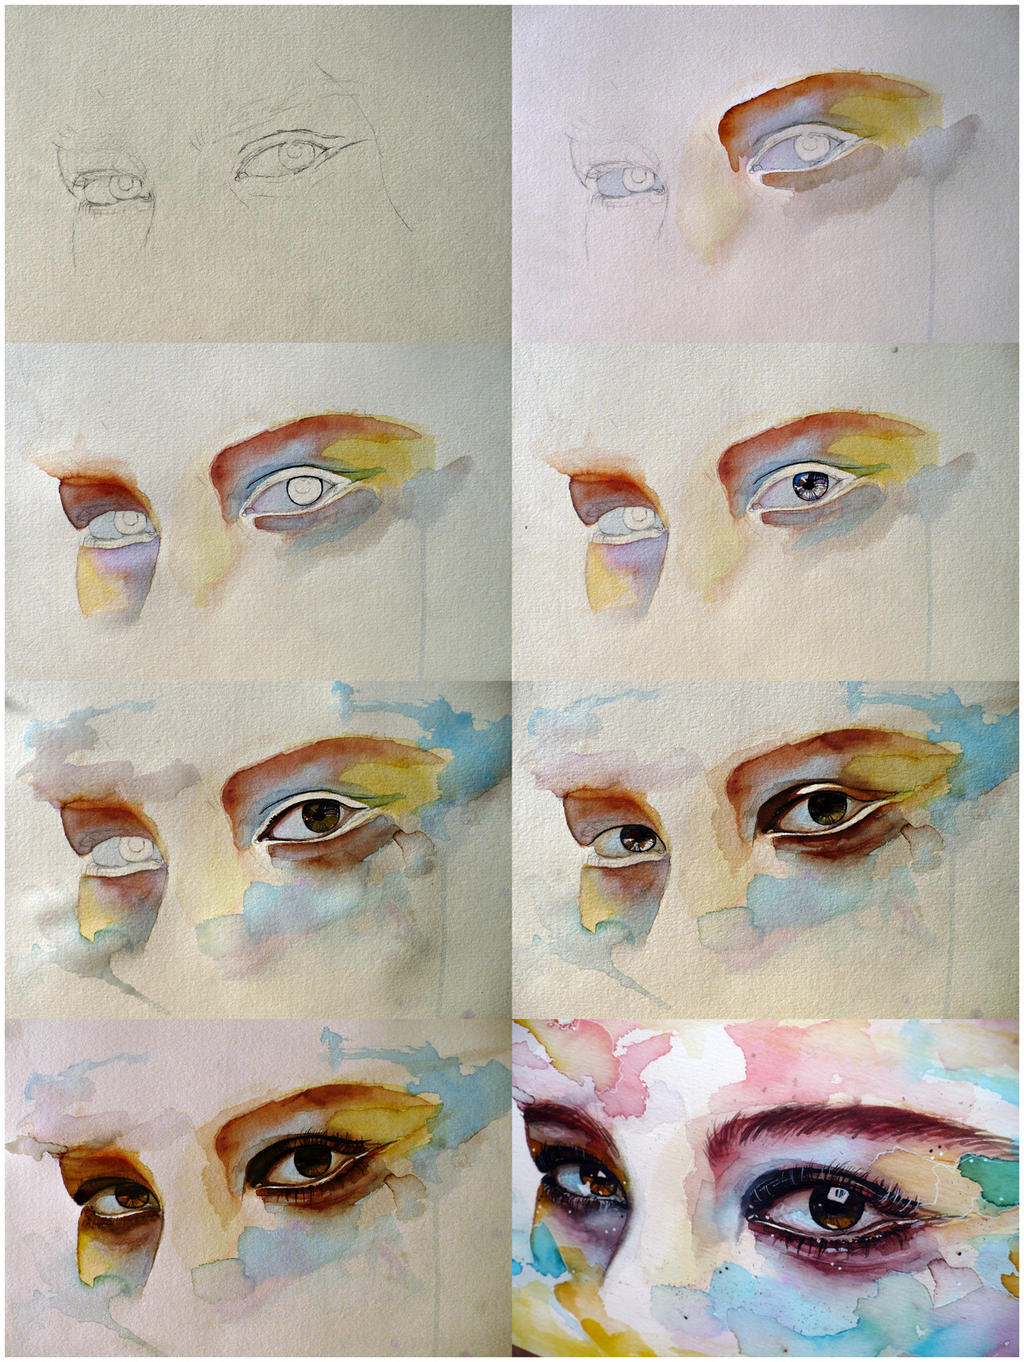 Watercolor eye study step by step by jane beata on deviantart for Step by step painting tutorial